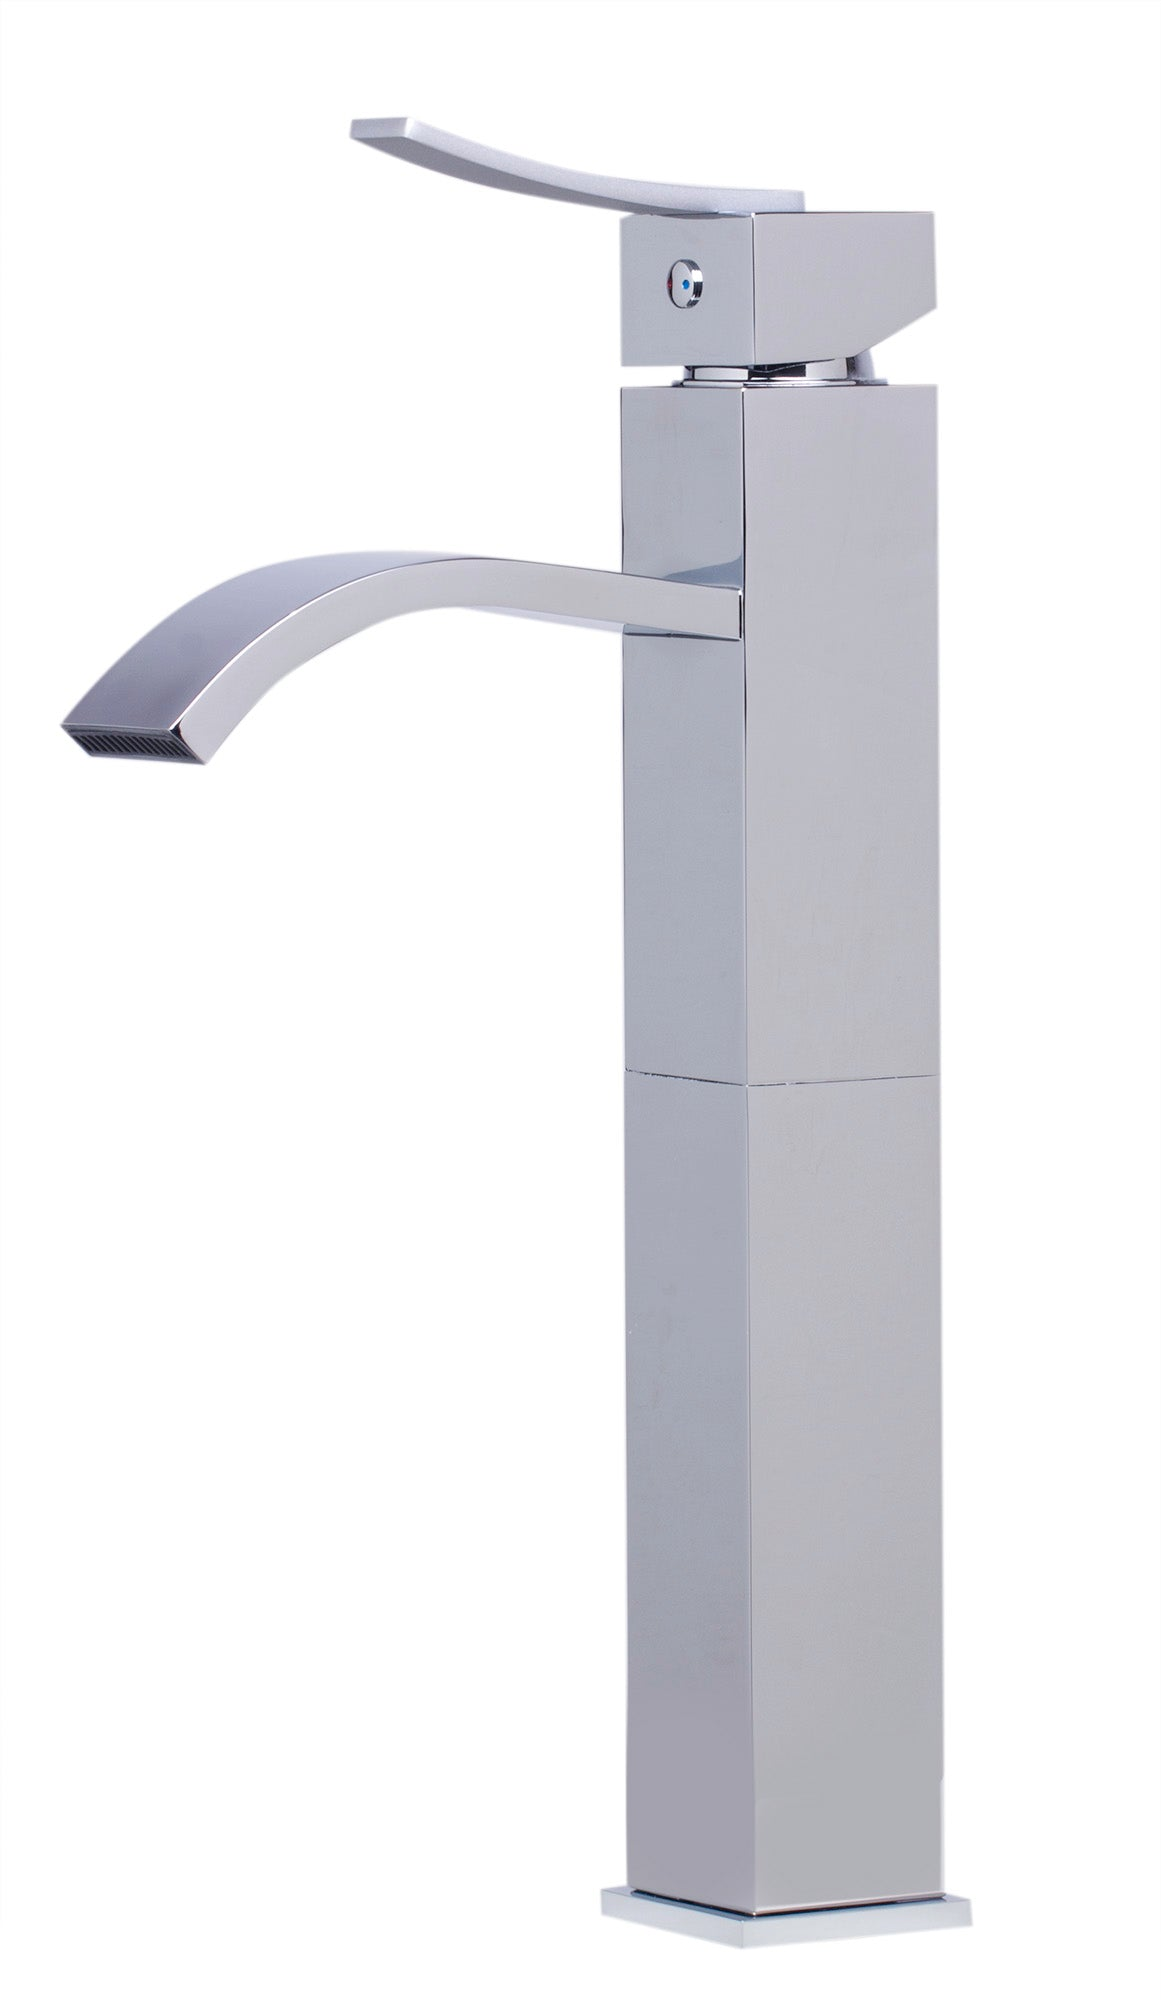 ALFI Tall Polished Chrome Tall Square Body Curved Spout Single Lever ...